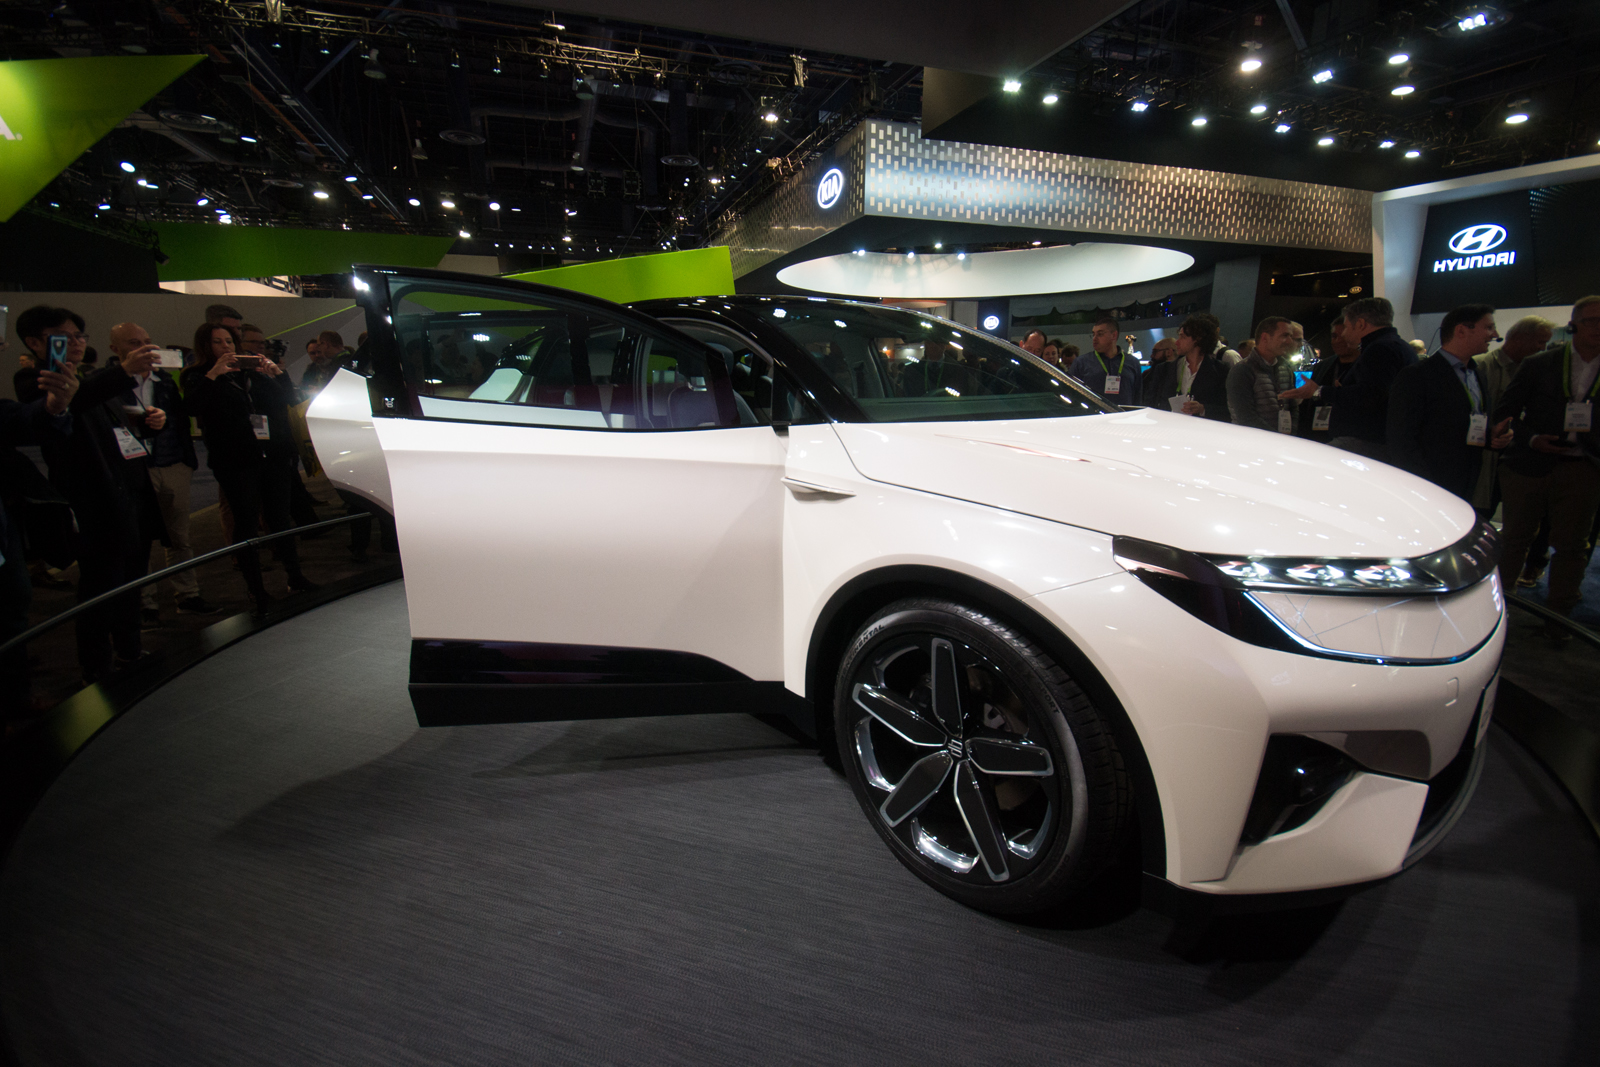 Byton Suv Concept Debuts At Ces Ahead Of Us Arrival In